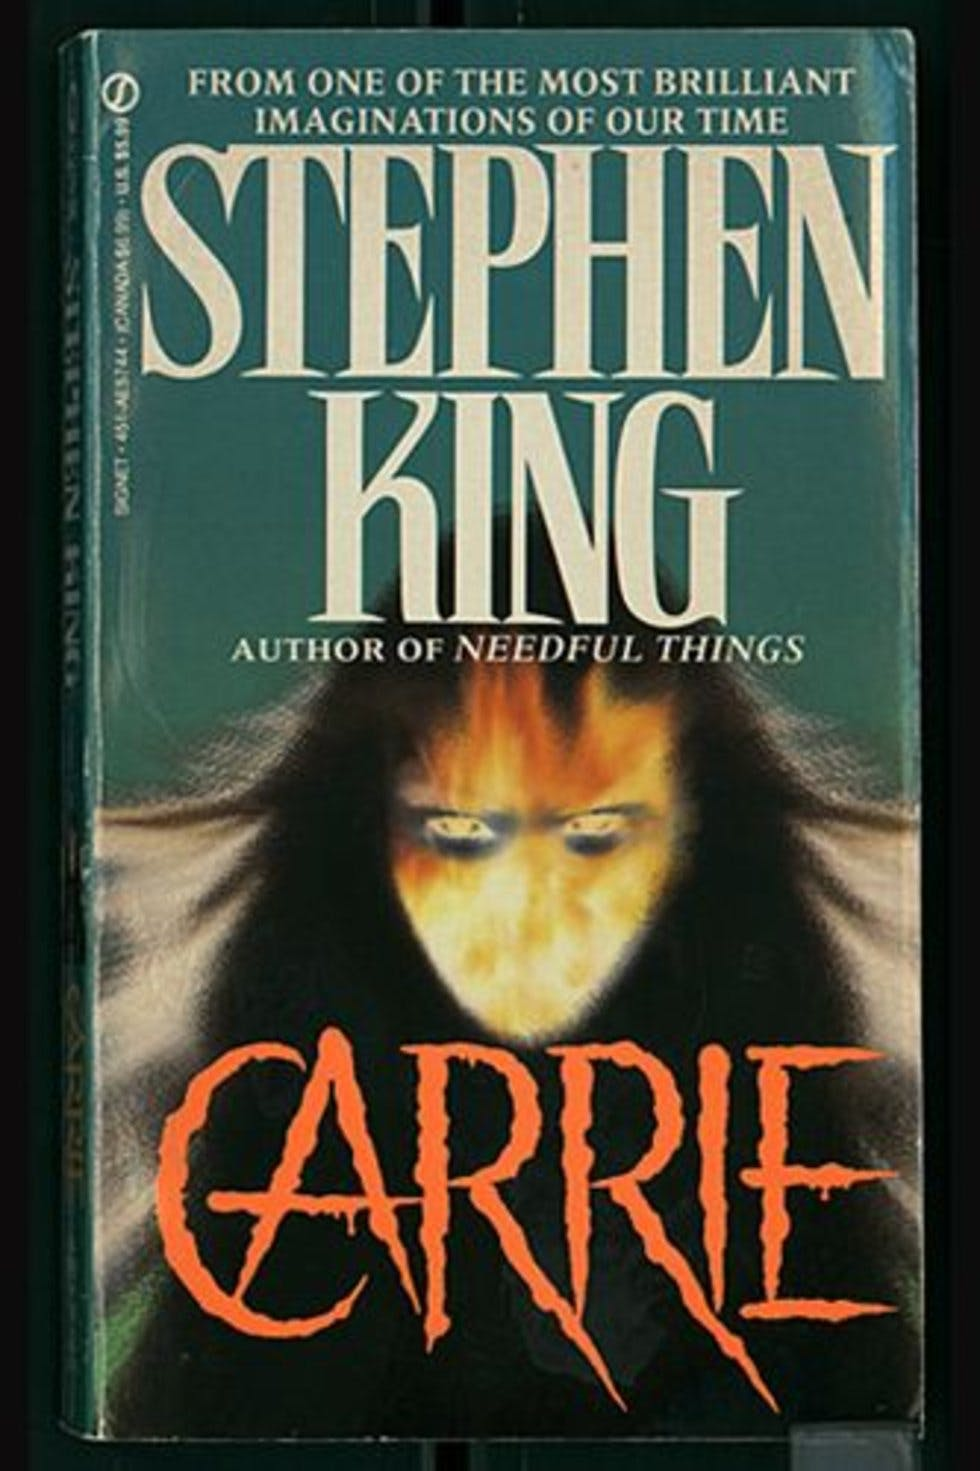 the-25-creepiest-book-covers-ever-8.jpg